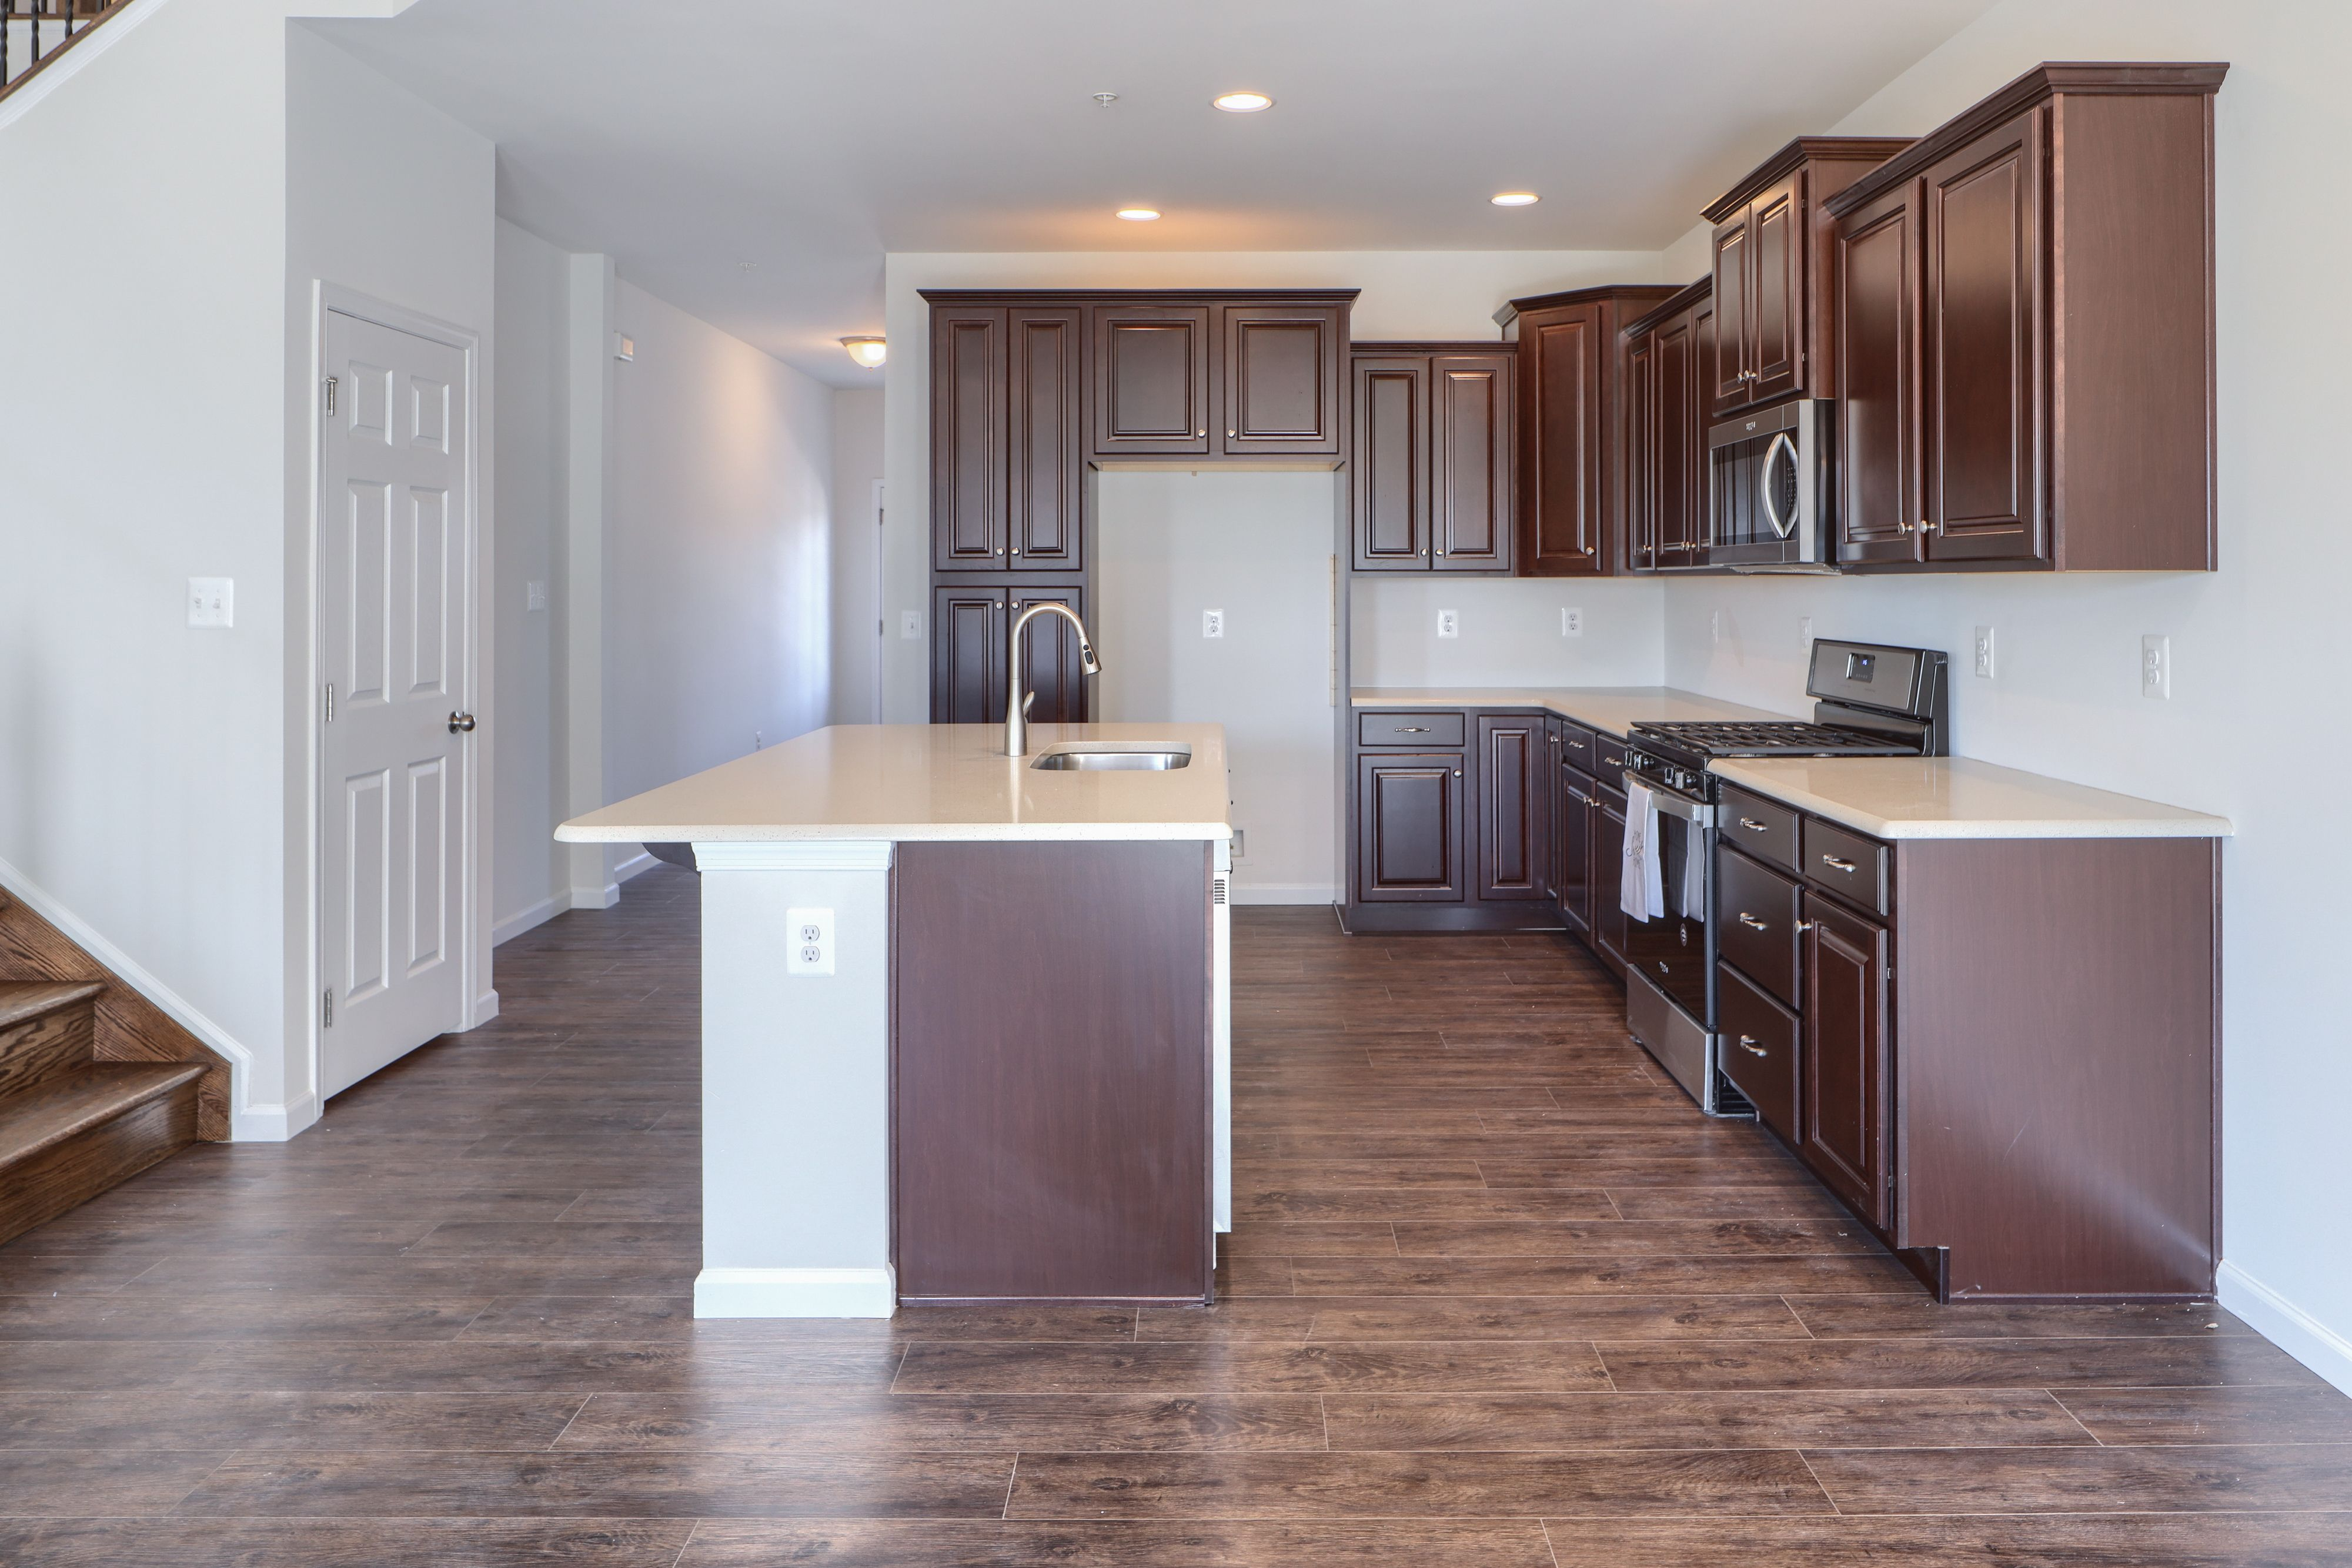 Kitchen featured in the Caspian Traditional - End Unit - Alt. Elev. By Keystone Custom Homes